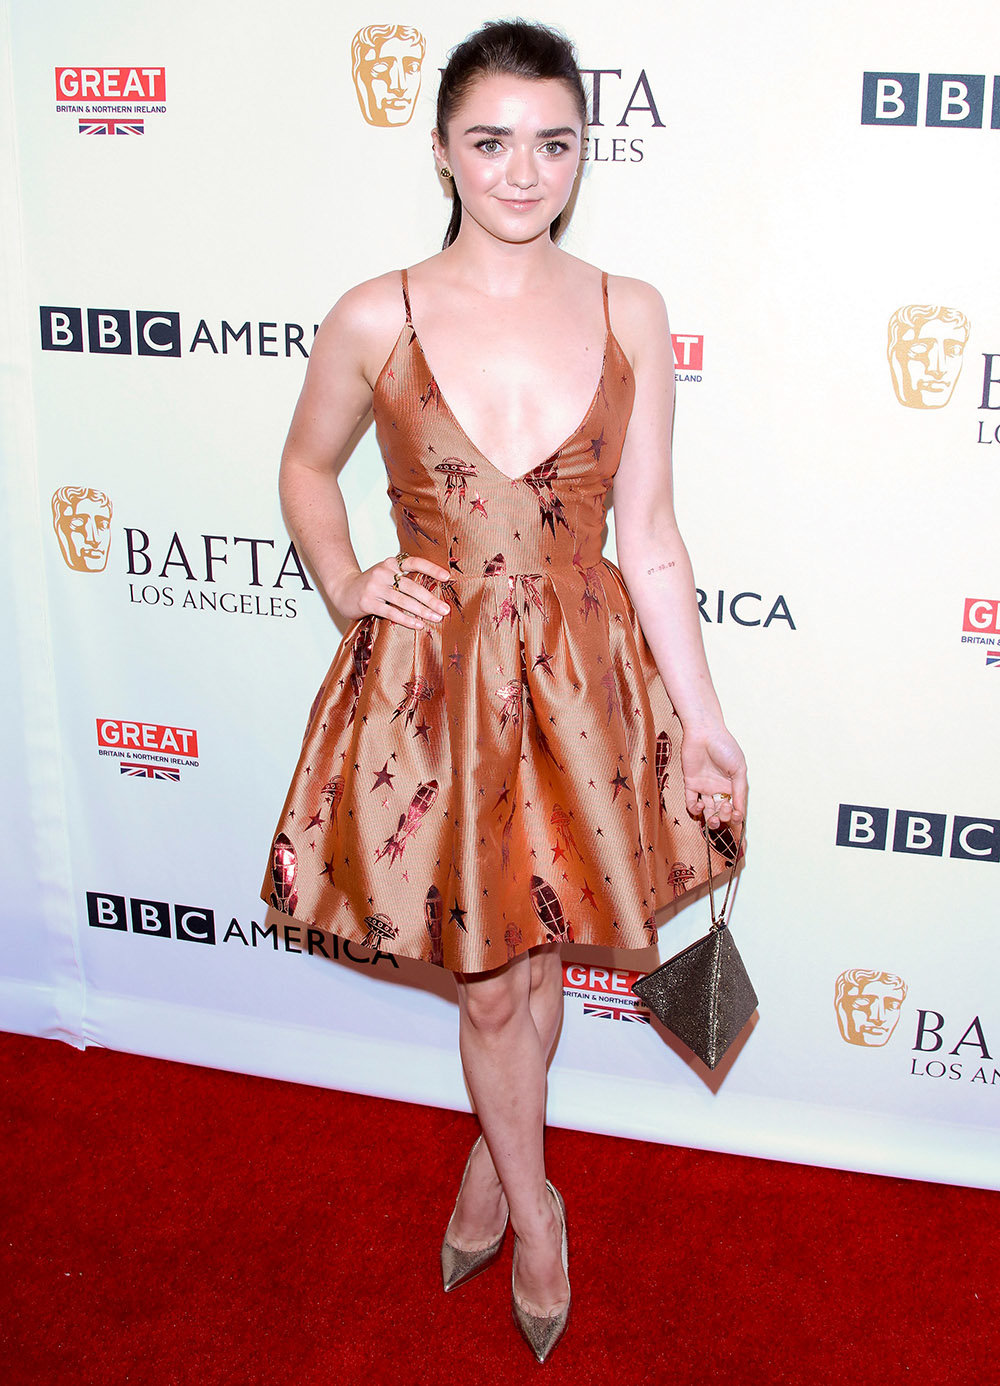 WEST HOLLYWOOD, CA - SEPTEMBER 17: Maisie Williams attends the BBC America BAFTA Los Angeles TV Tea Party at The London Hotel on September 17, 2016 in West Hollywood, California. (Photo by JB Lacroix/WireImage)